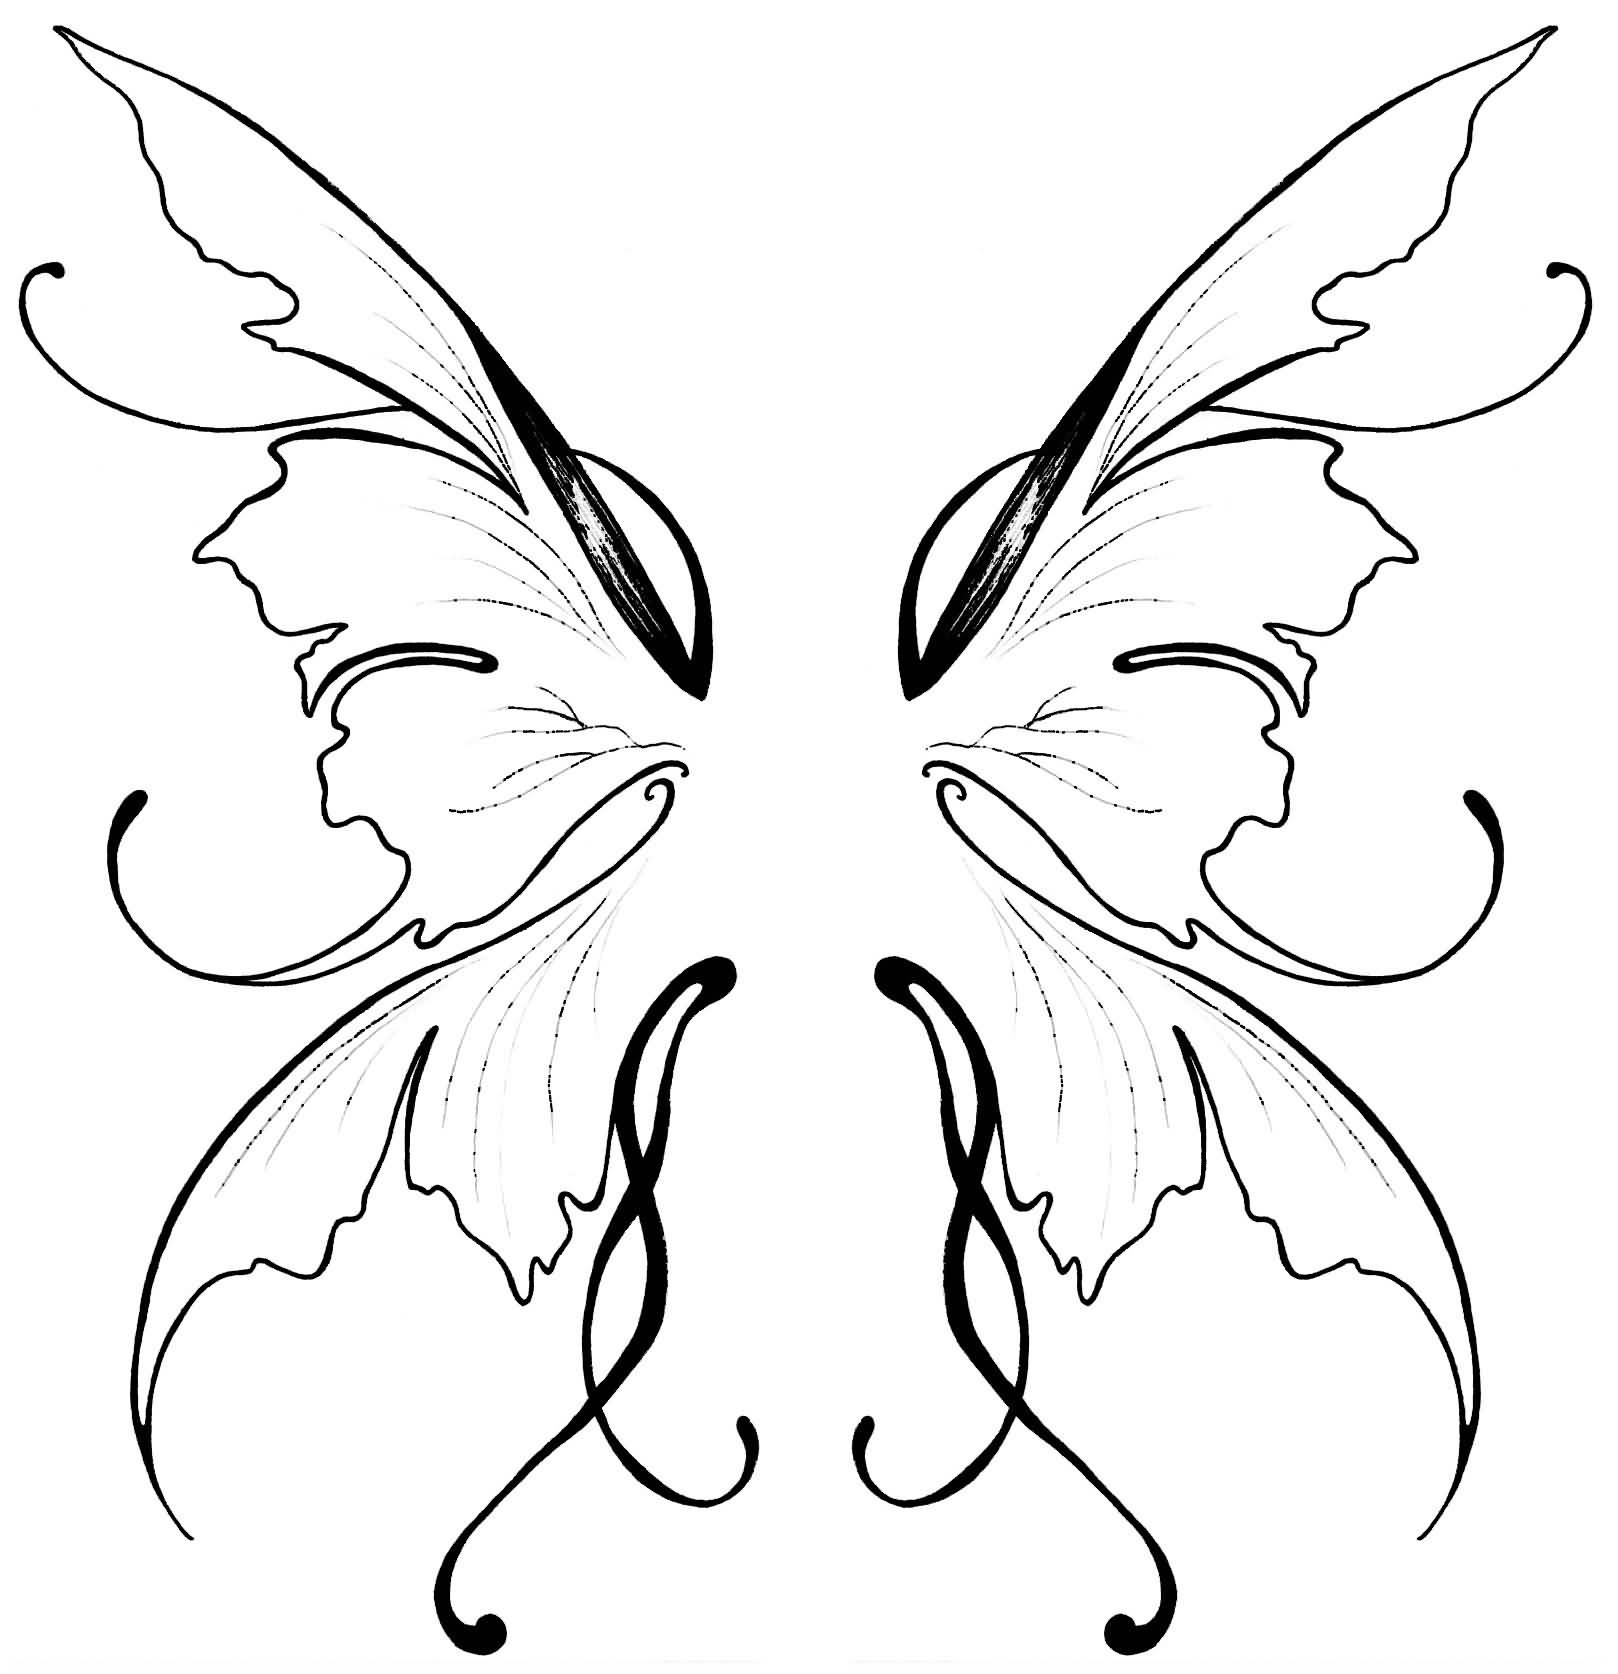 awesome black outline fairy wings tattoo design by liliana reis